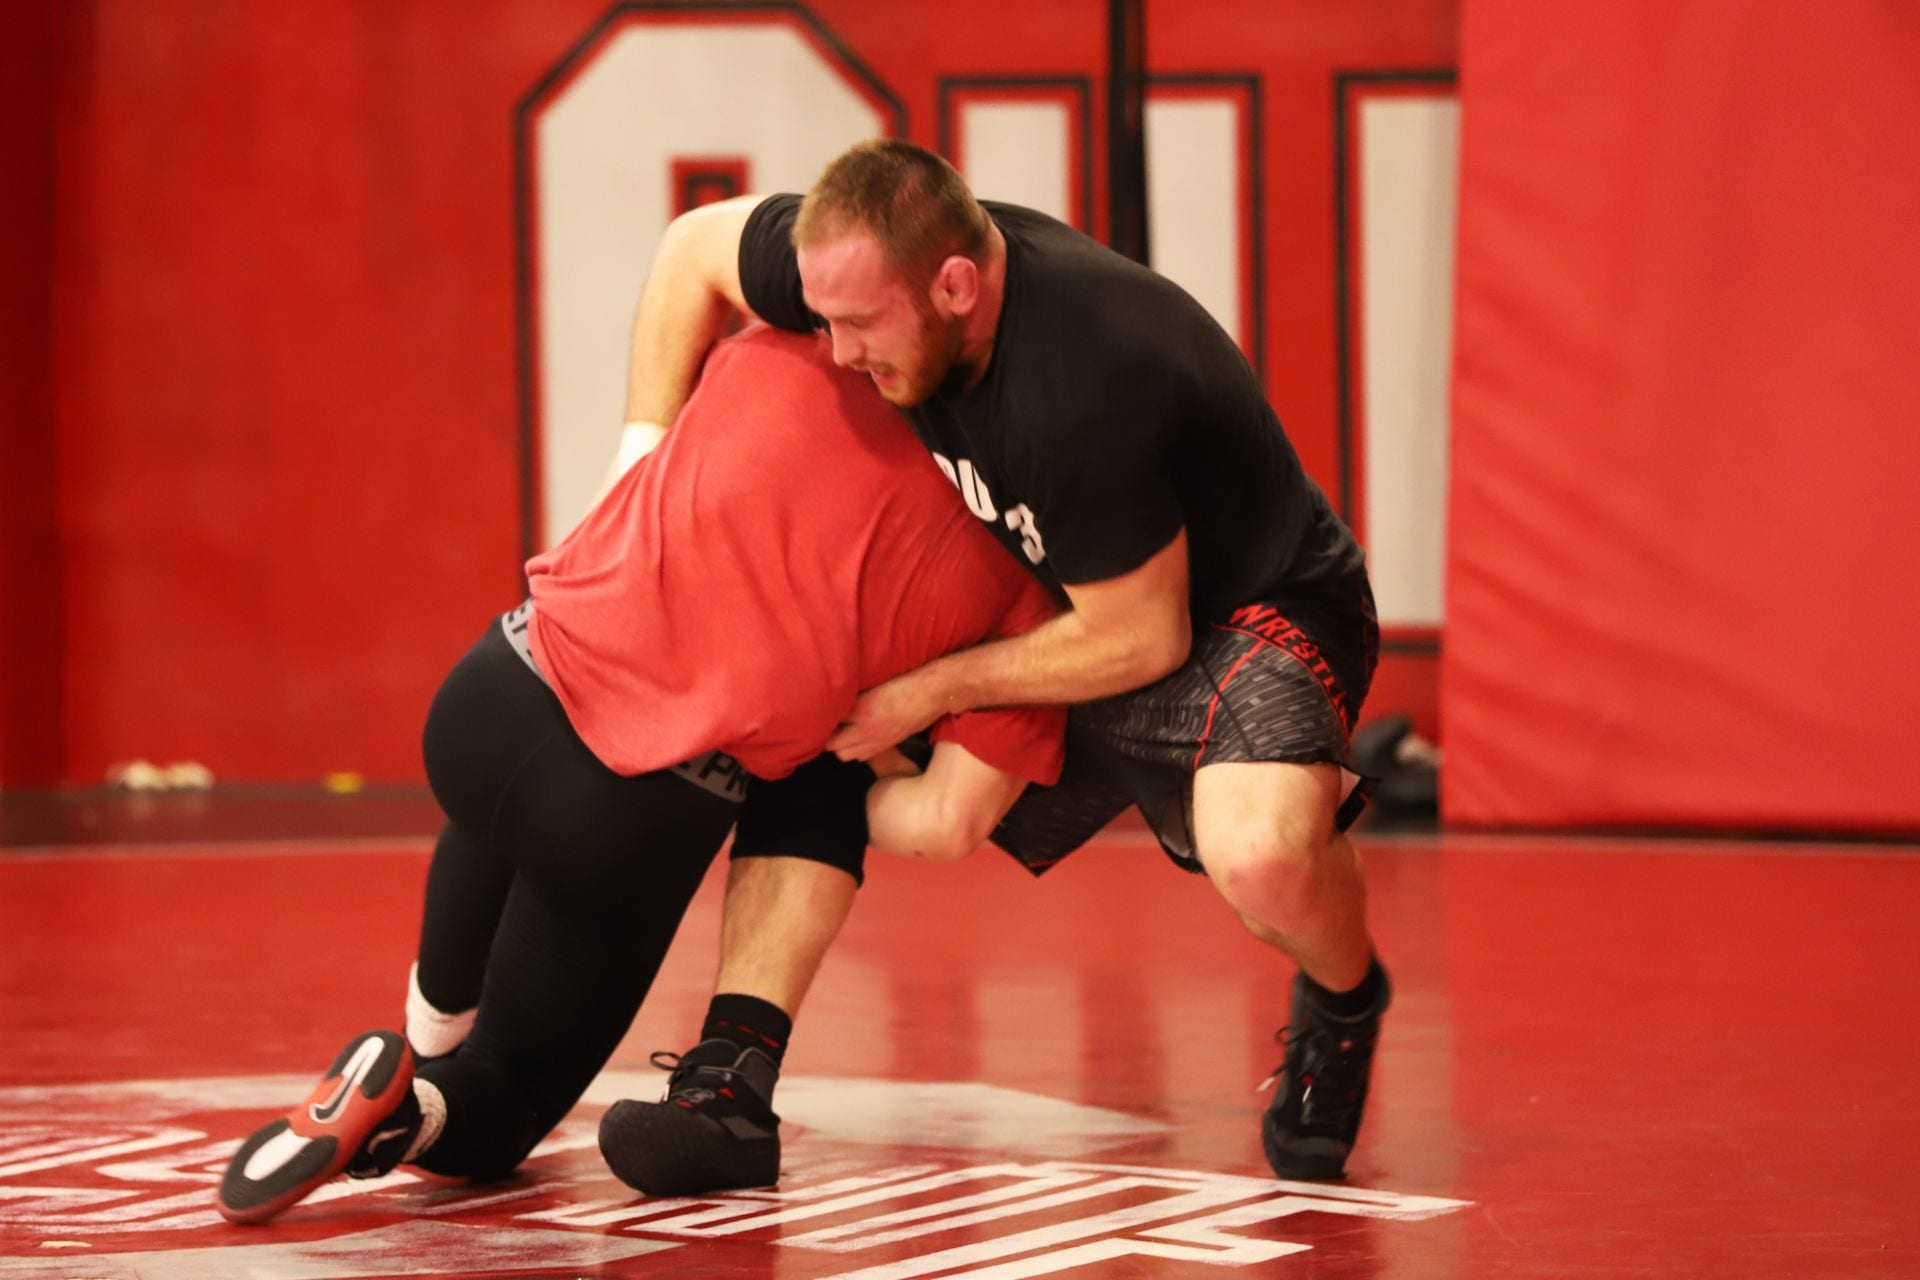 Wrestling: Ohio RTC gives area wrestlers chance to train